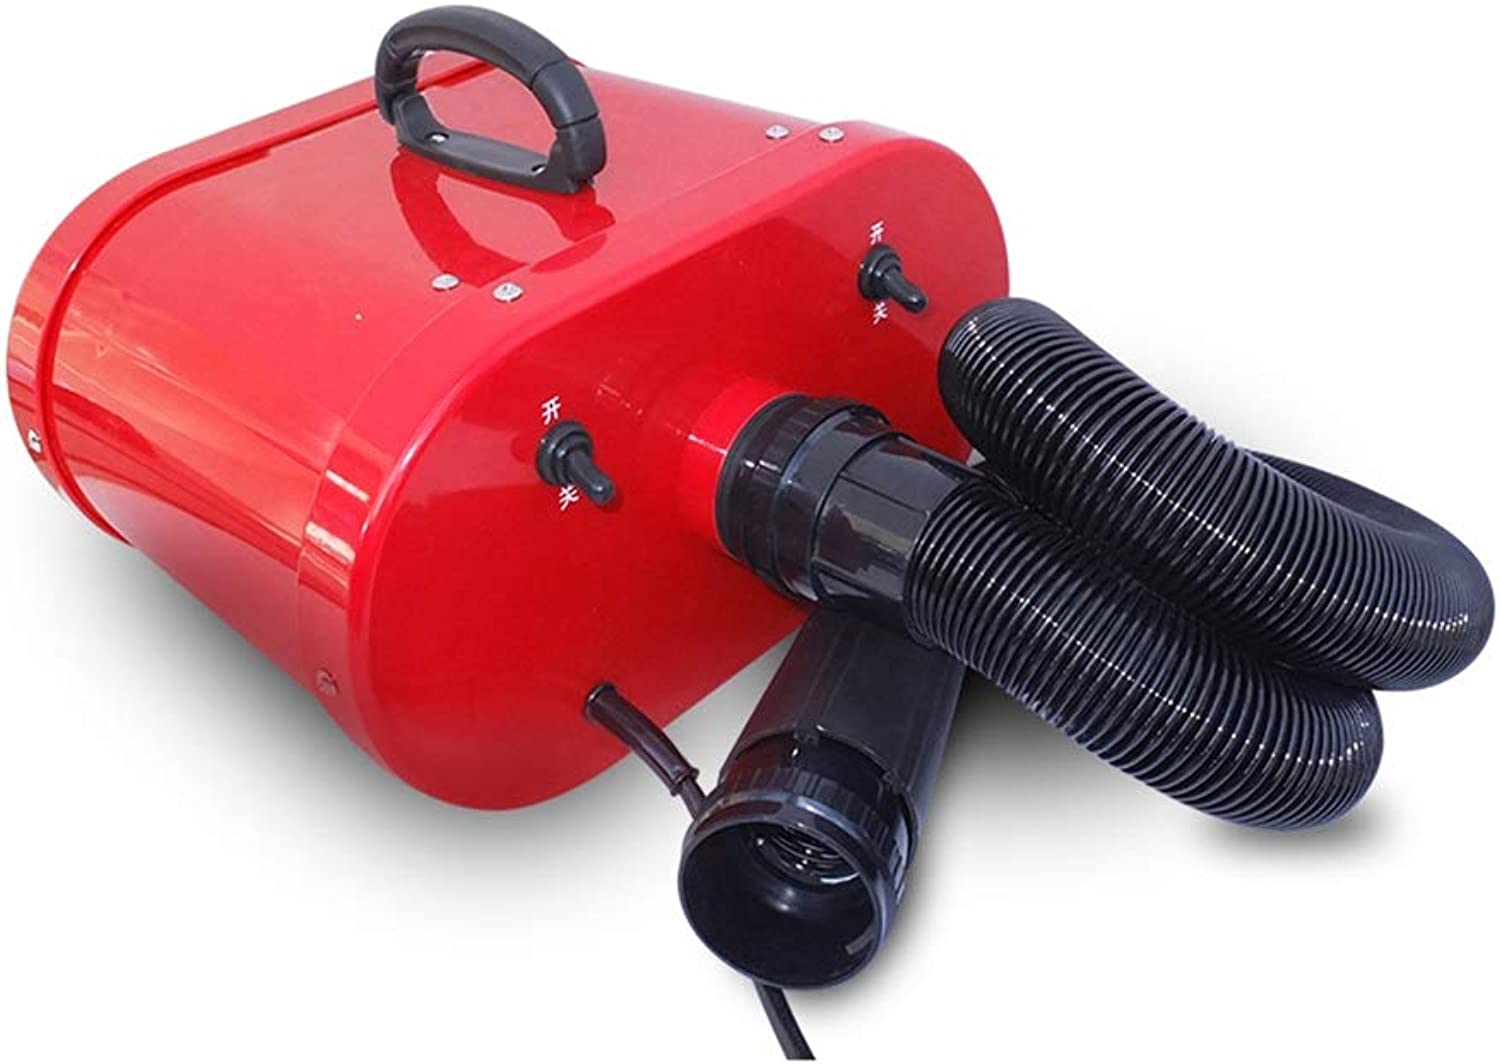 Dog Dryer, Pet Beauty Grooming Cat Hair Dryer Professional Heater Shock Blower Suitable For All Small Animals (Red)